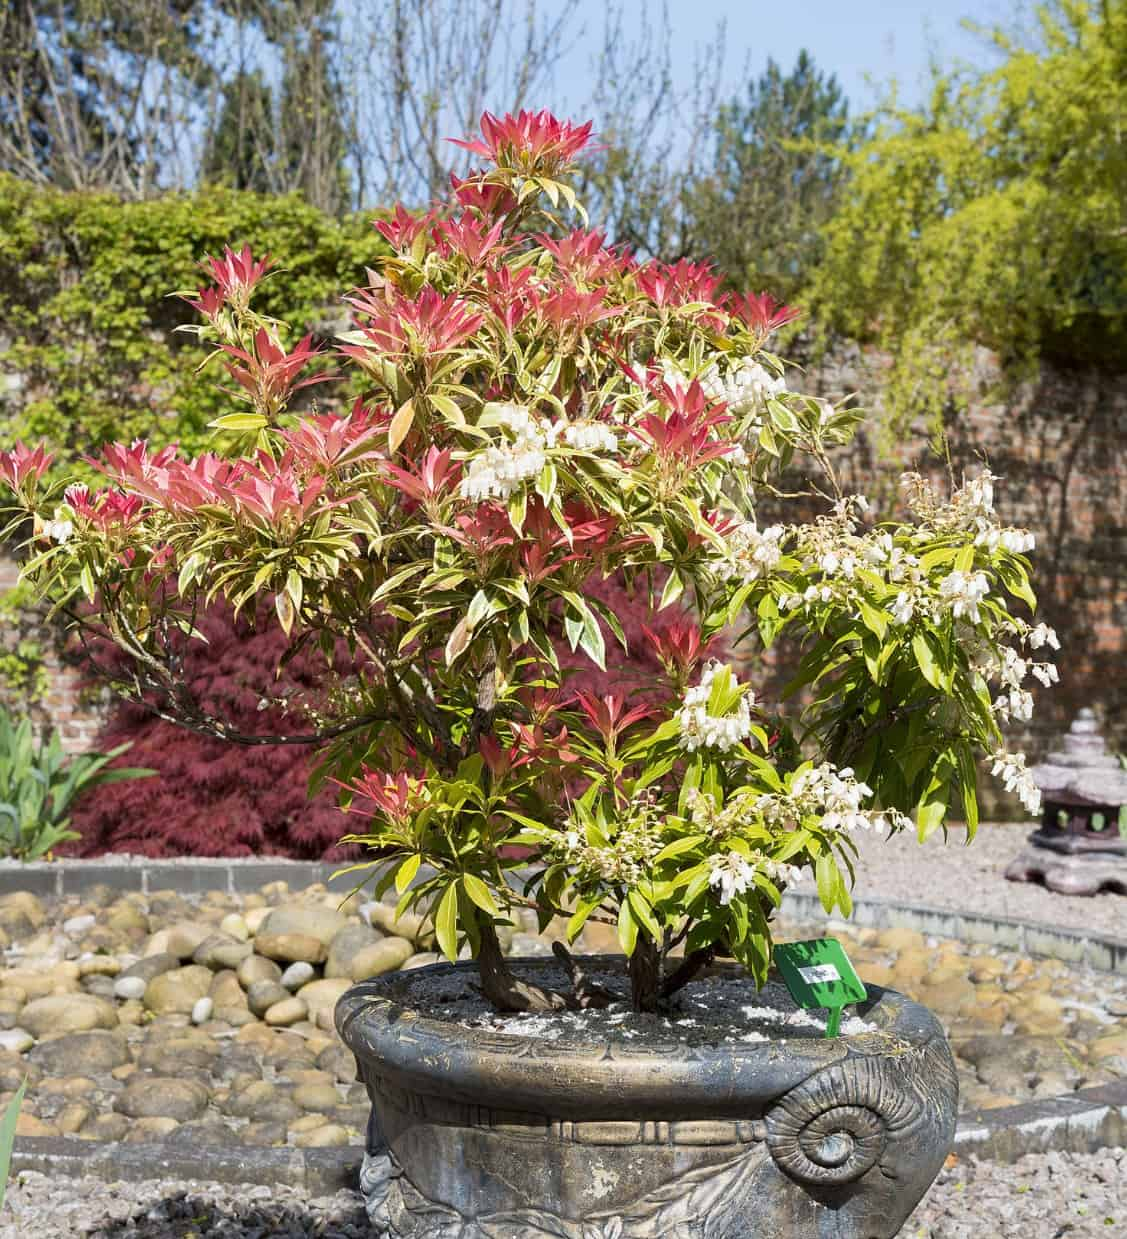 The Japanese pieris or lily or the valley bush has graceful limbs that trail down over the pot it is in.